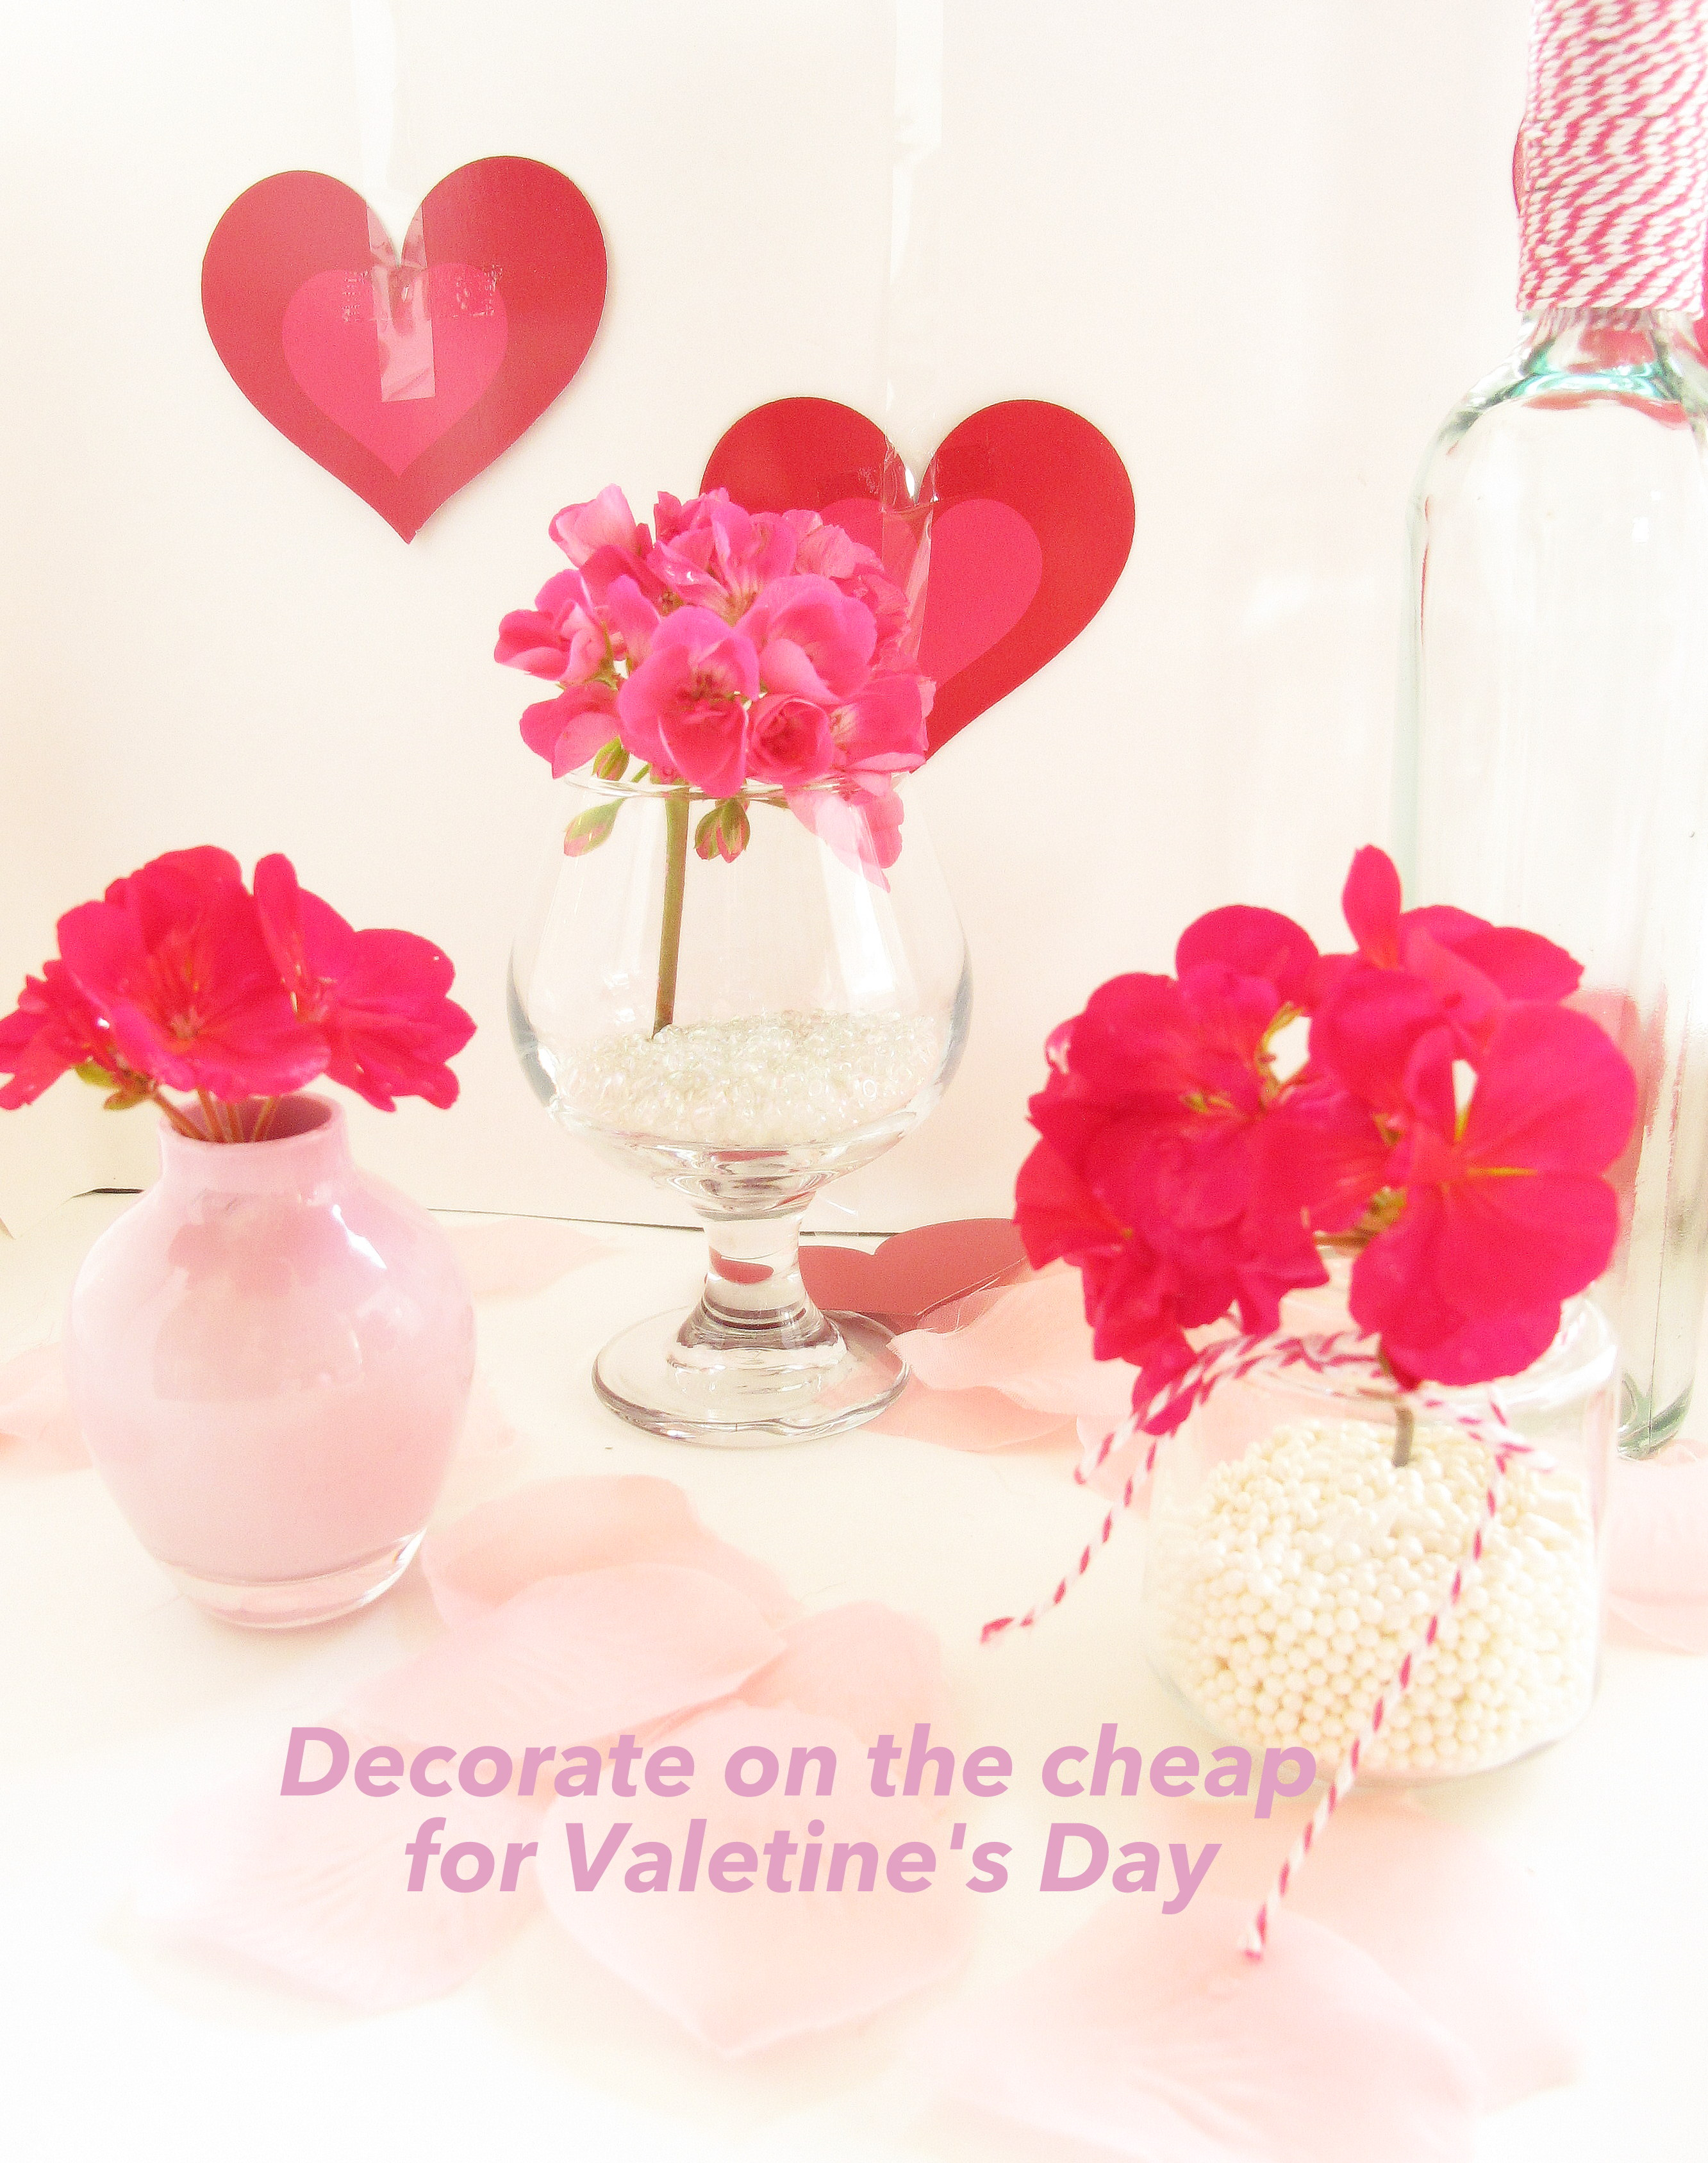 Decorate For Valentines Day On The Cheap